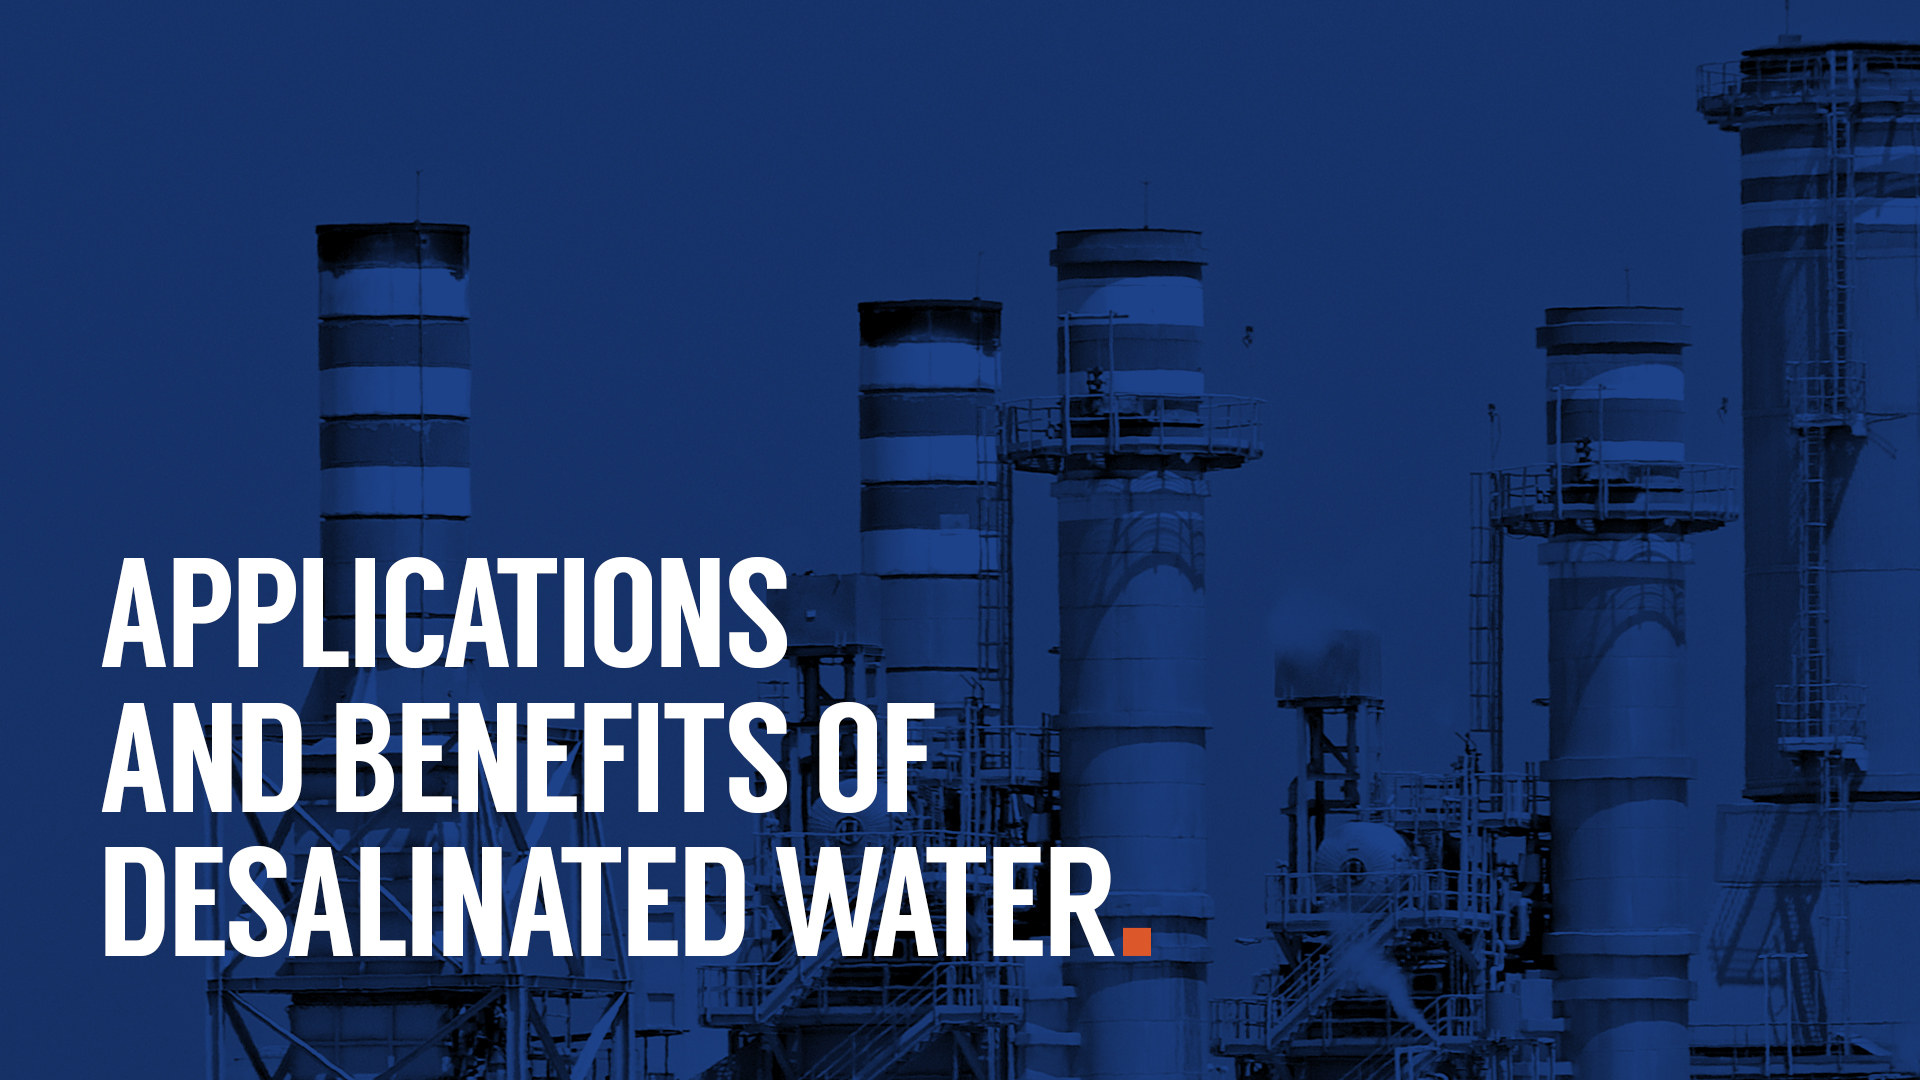 Applications and benefits of desalinated water